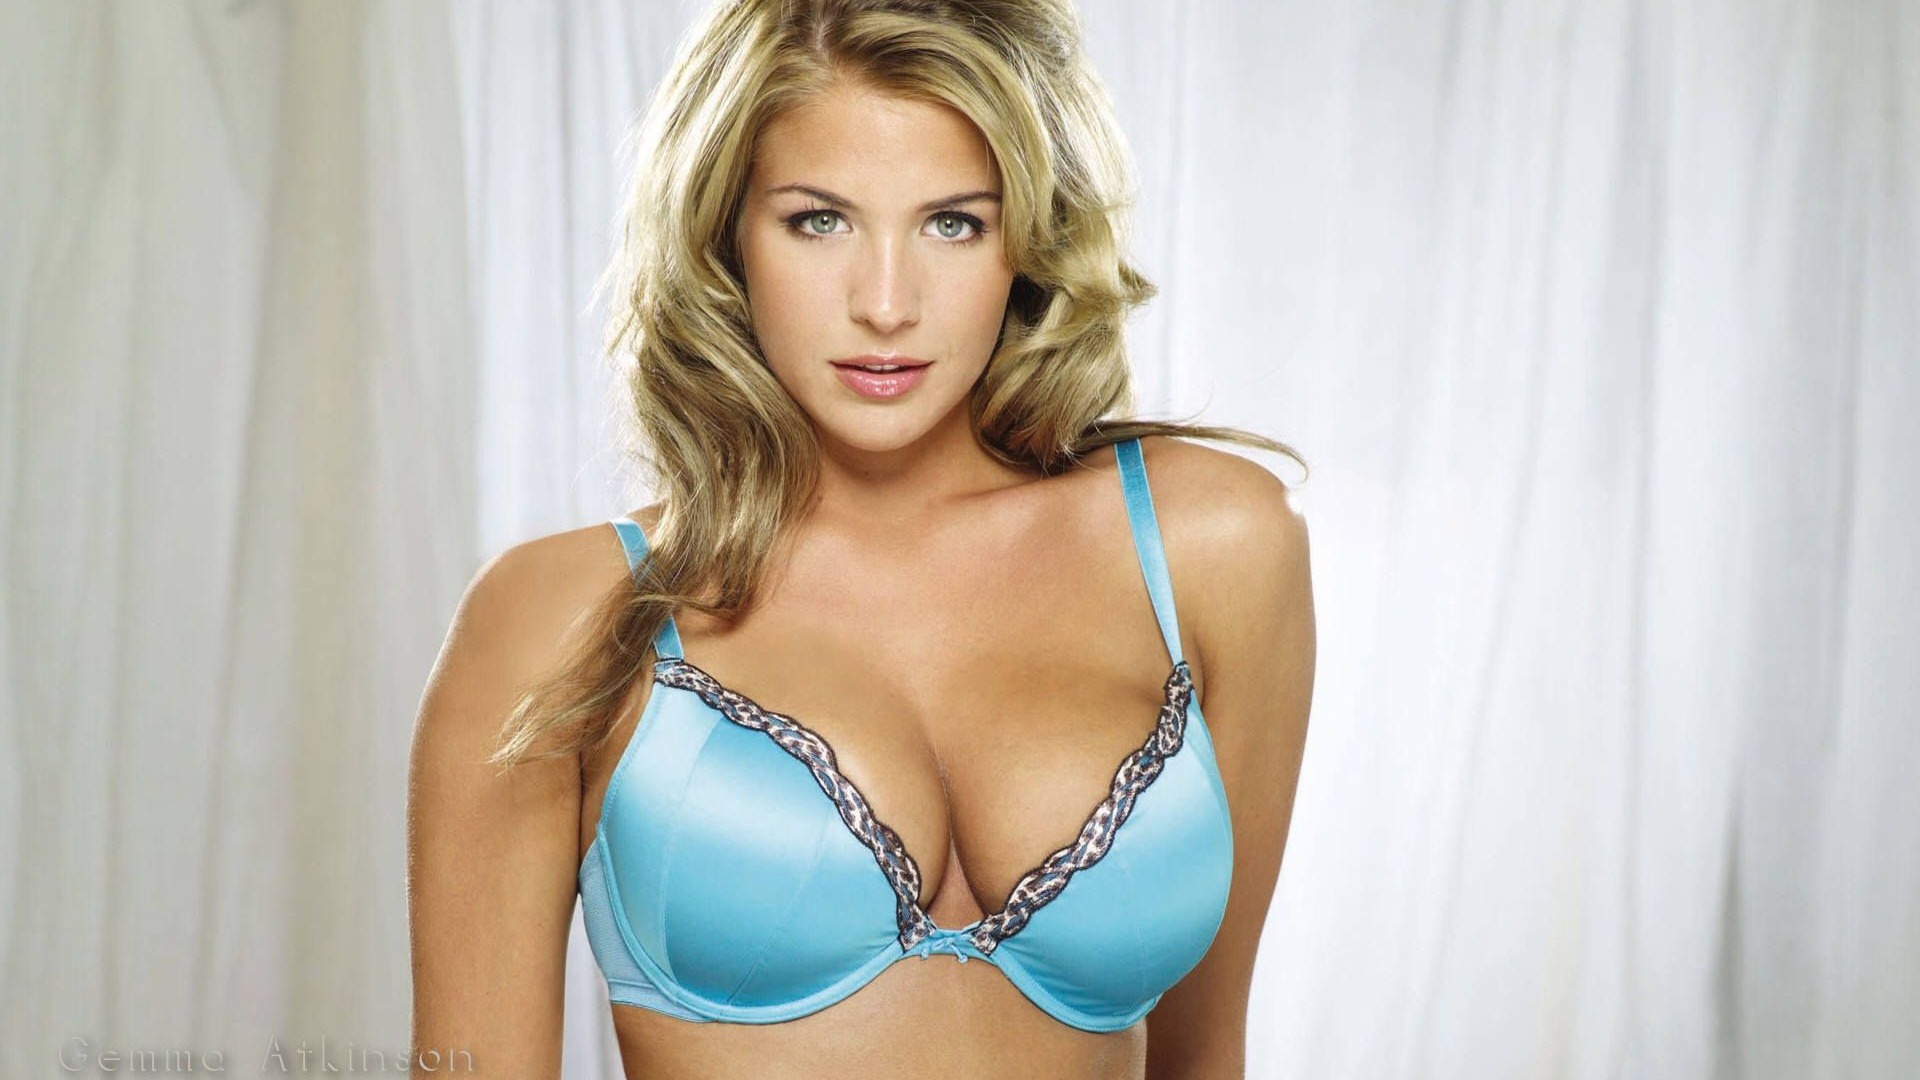 Gemma atkinson wet shirt photos 865